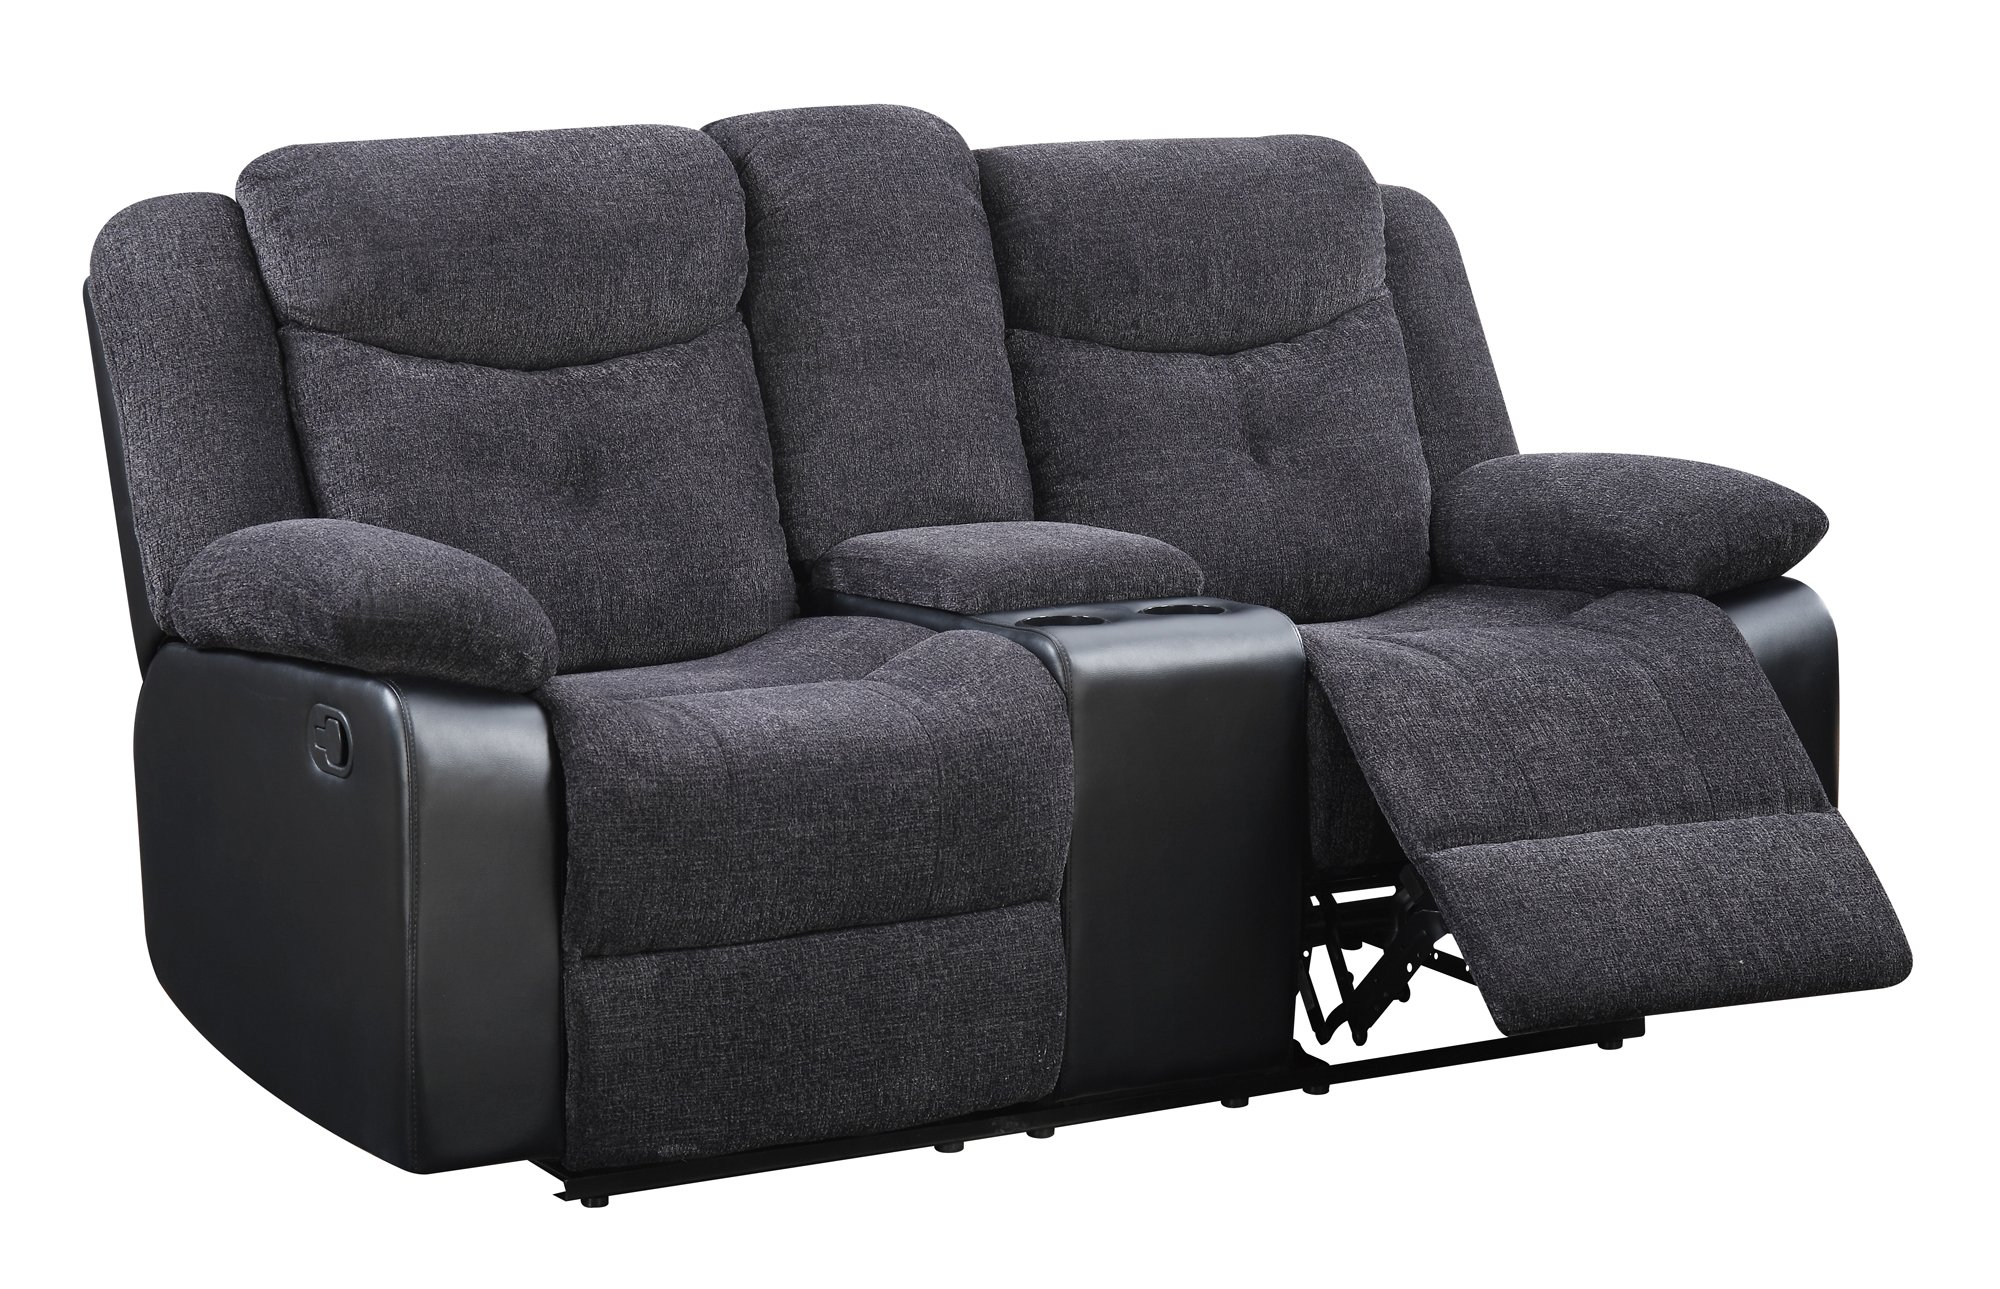 U1566 Mouse Fabric Console Reclining Loveseat By Global Furniture